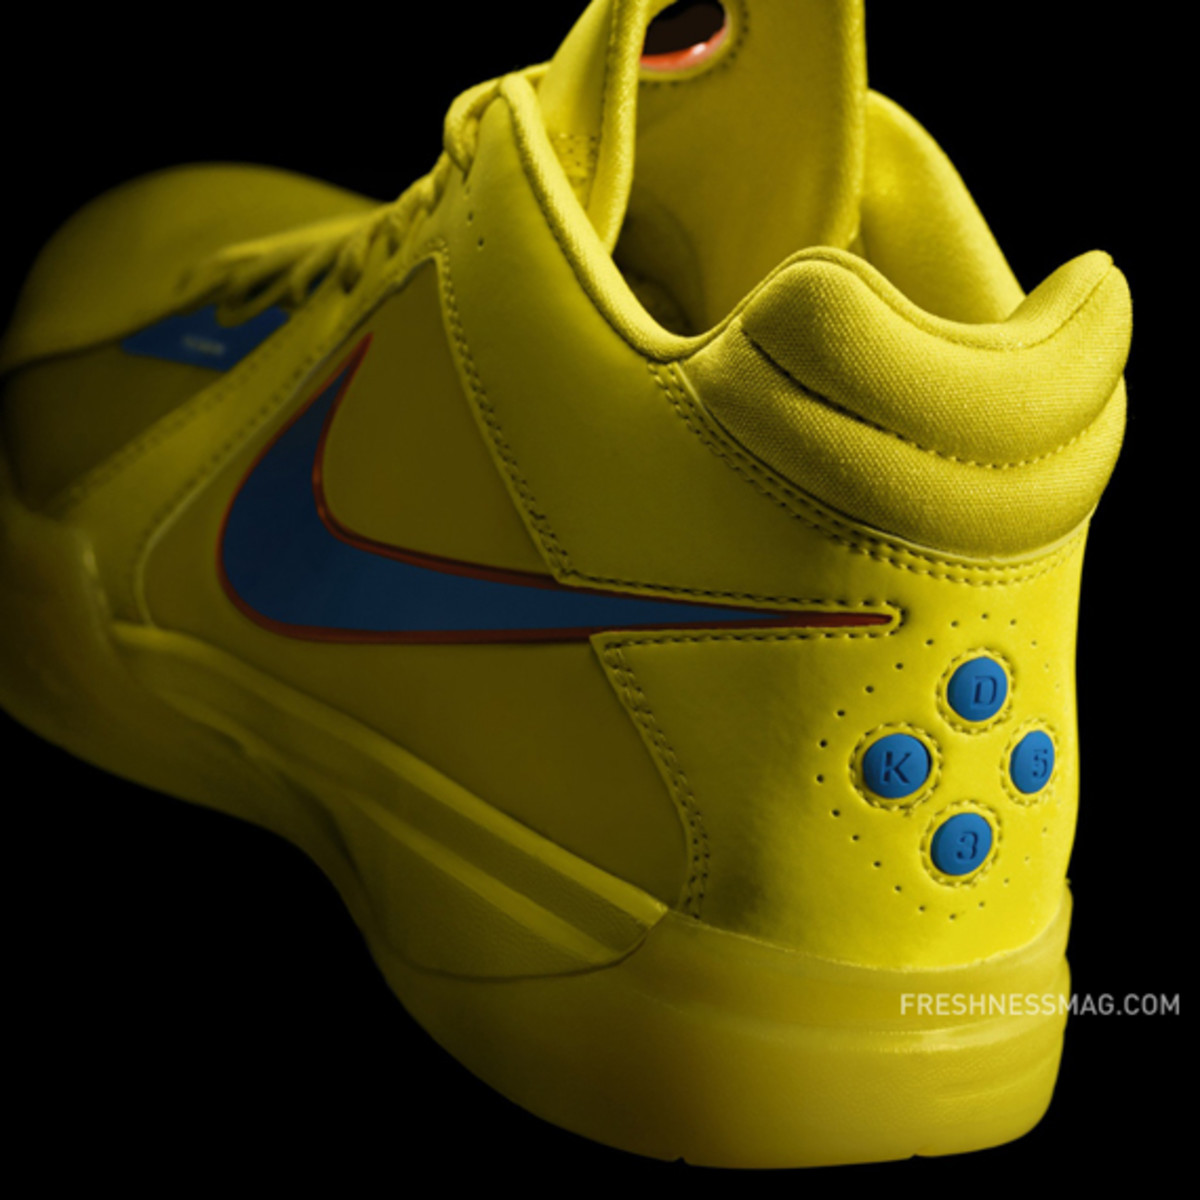 nike-basketball-christmas-day-2010-01b